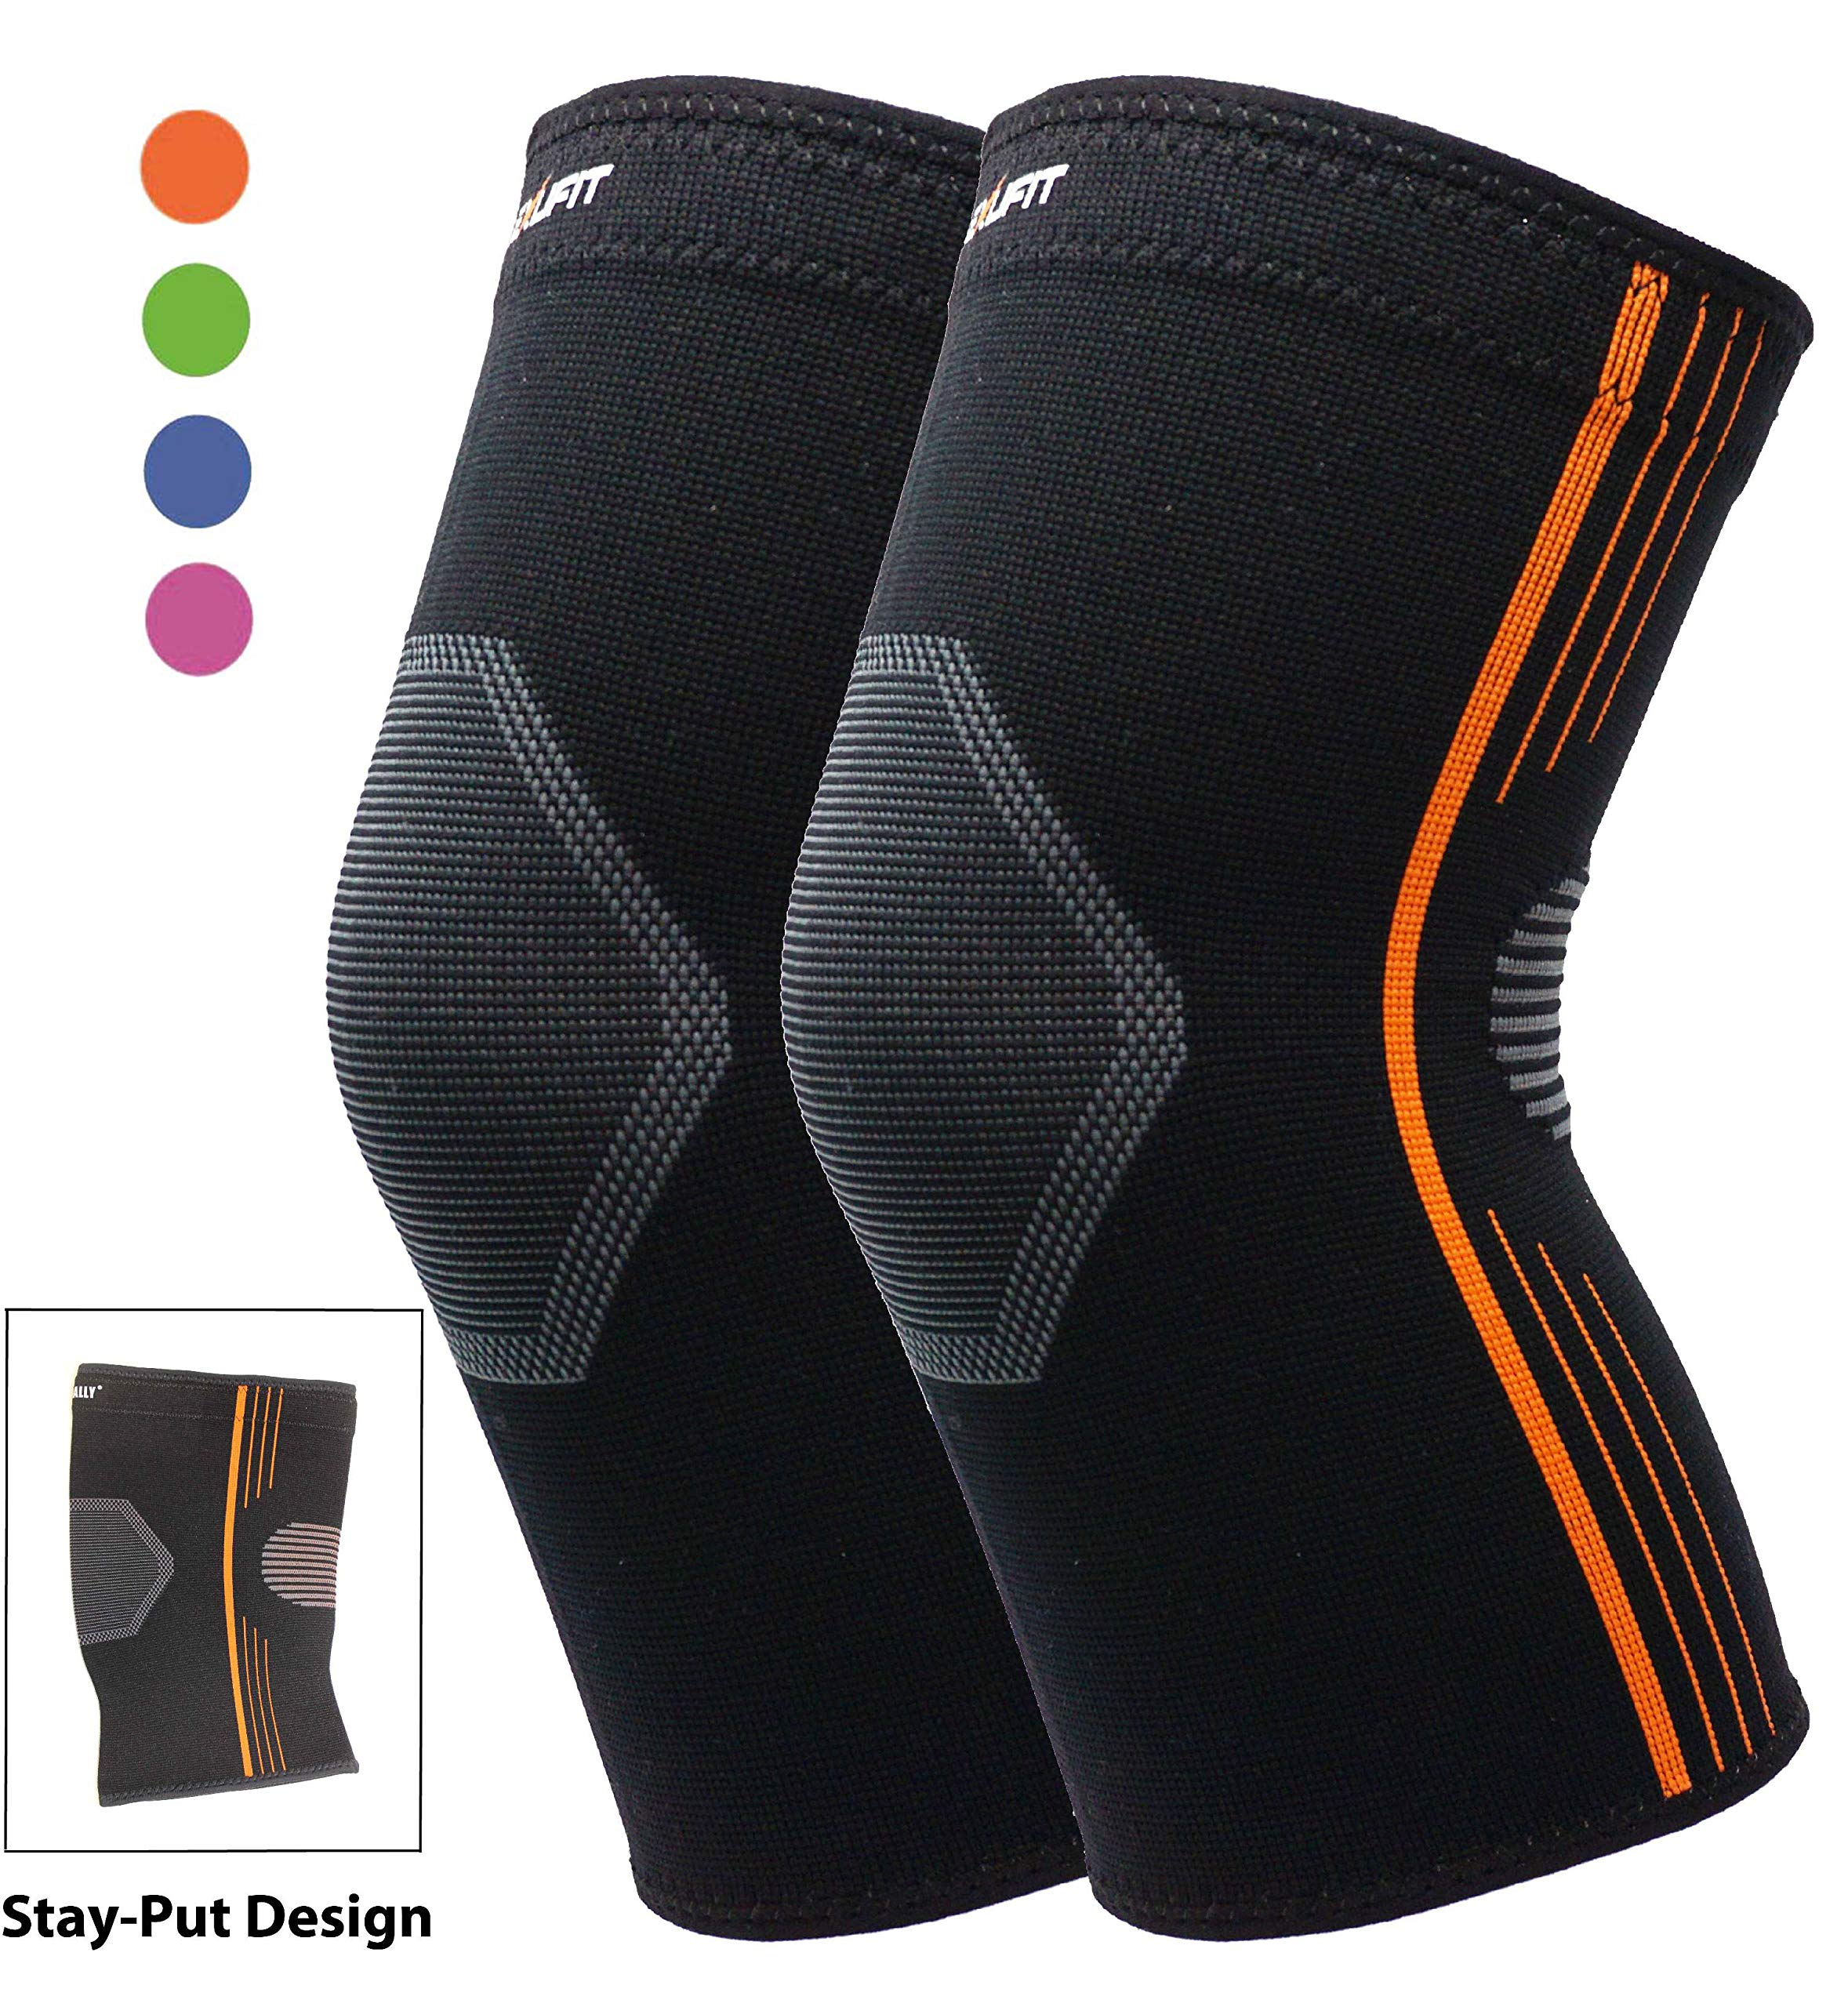 Premium Knee Brace Bursitis Compression Knee Sleeve Stay-Put Breathable for Running Basketball Crossfit Squats Weightlifting Arthritis and Meniscus Tear - 4 Colors (Orange, Small 2-Pack)